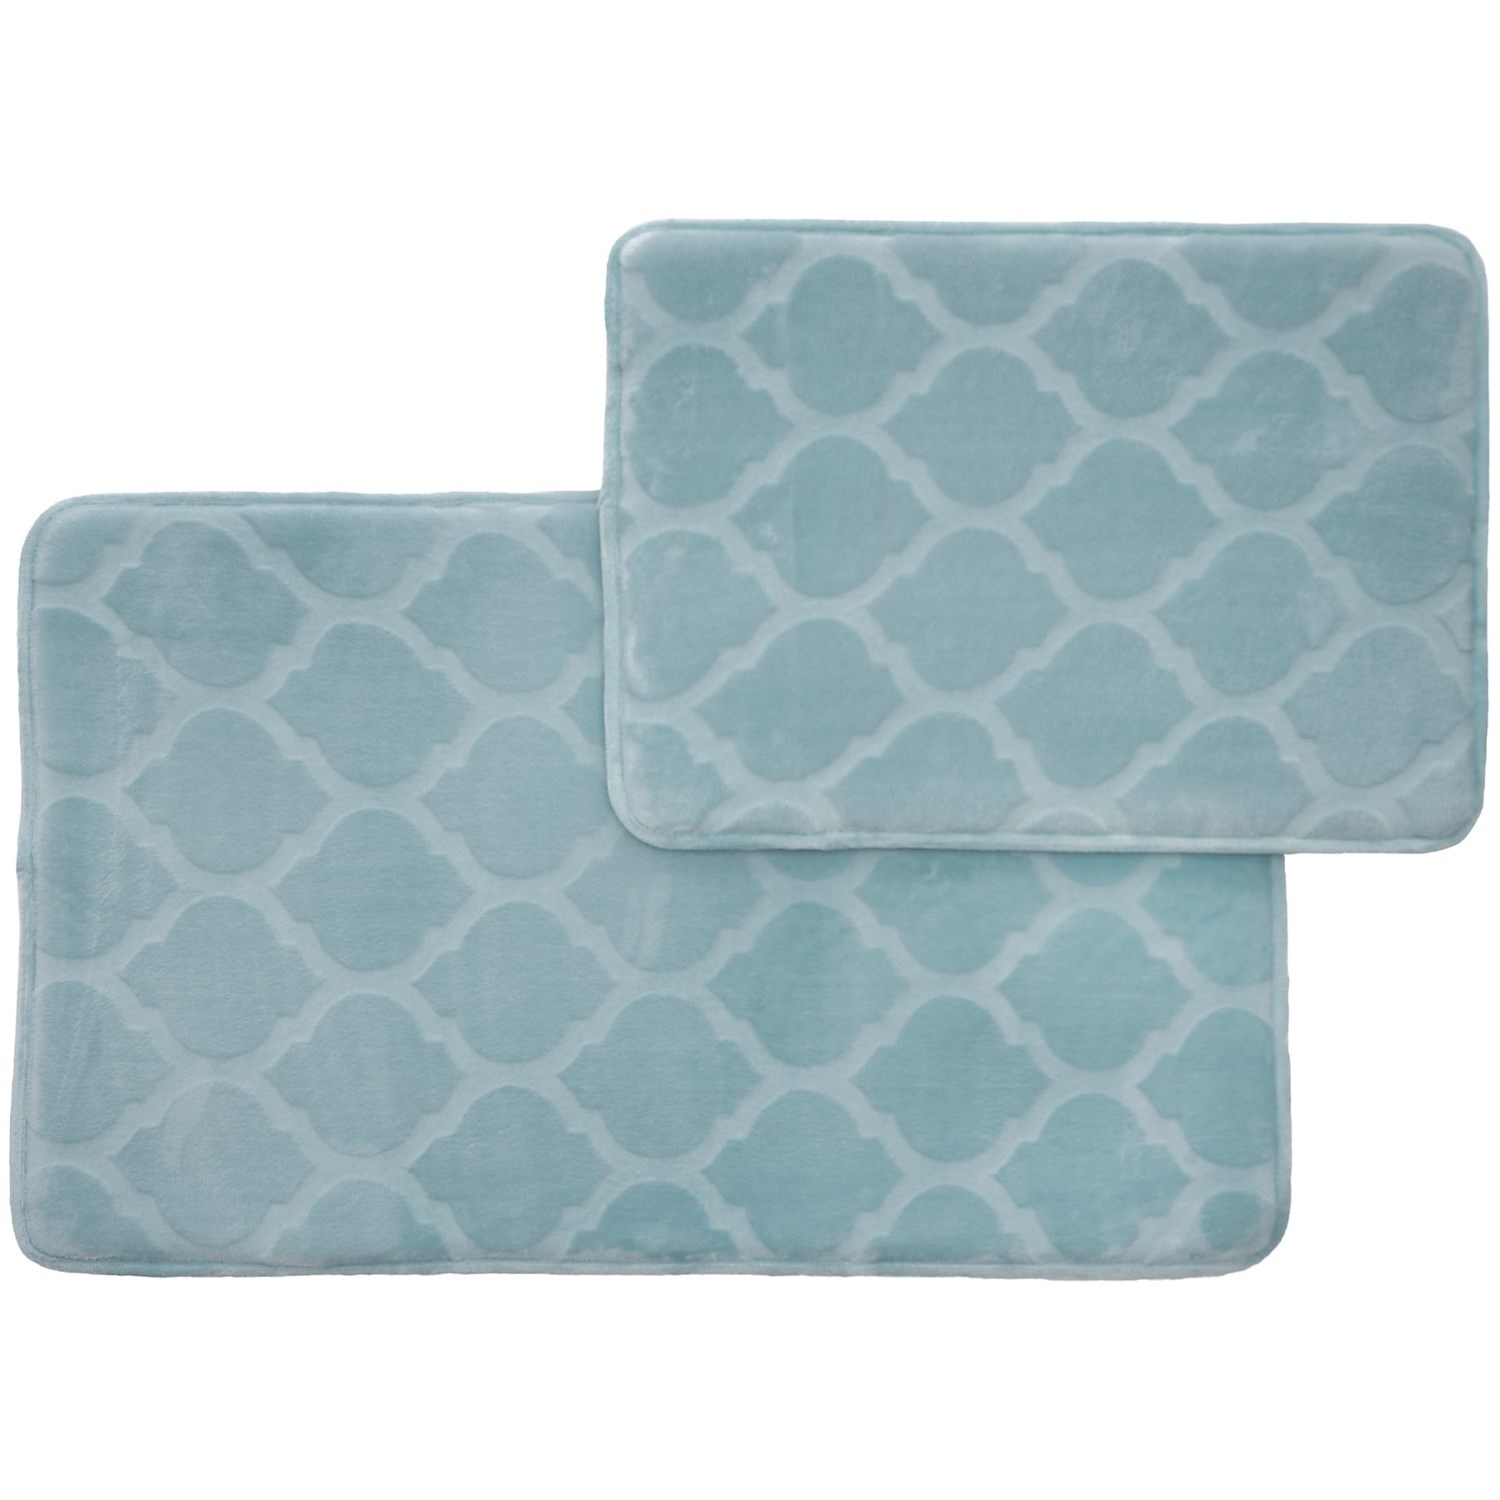 flokati and rectangle area acrylic baby backing cotton blue material rug lovely with shag solid shape awesome rugs style designs accessories pattern light